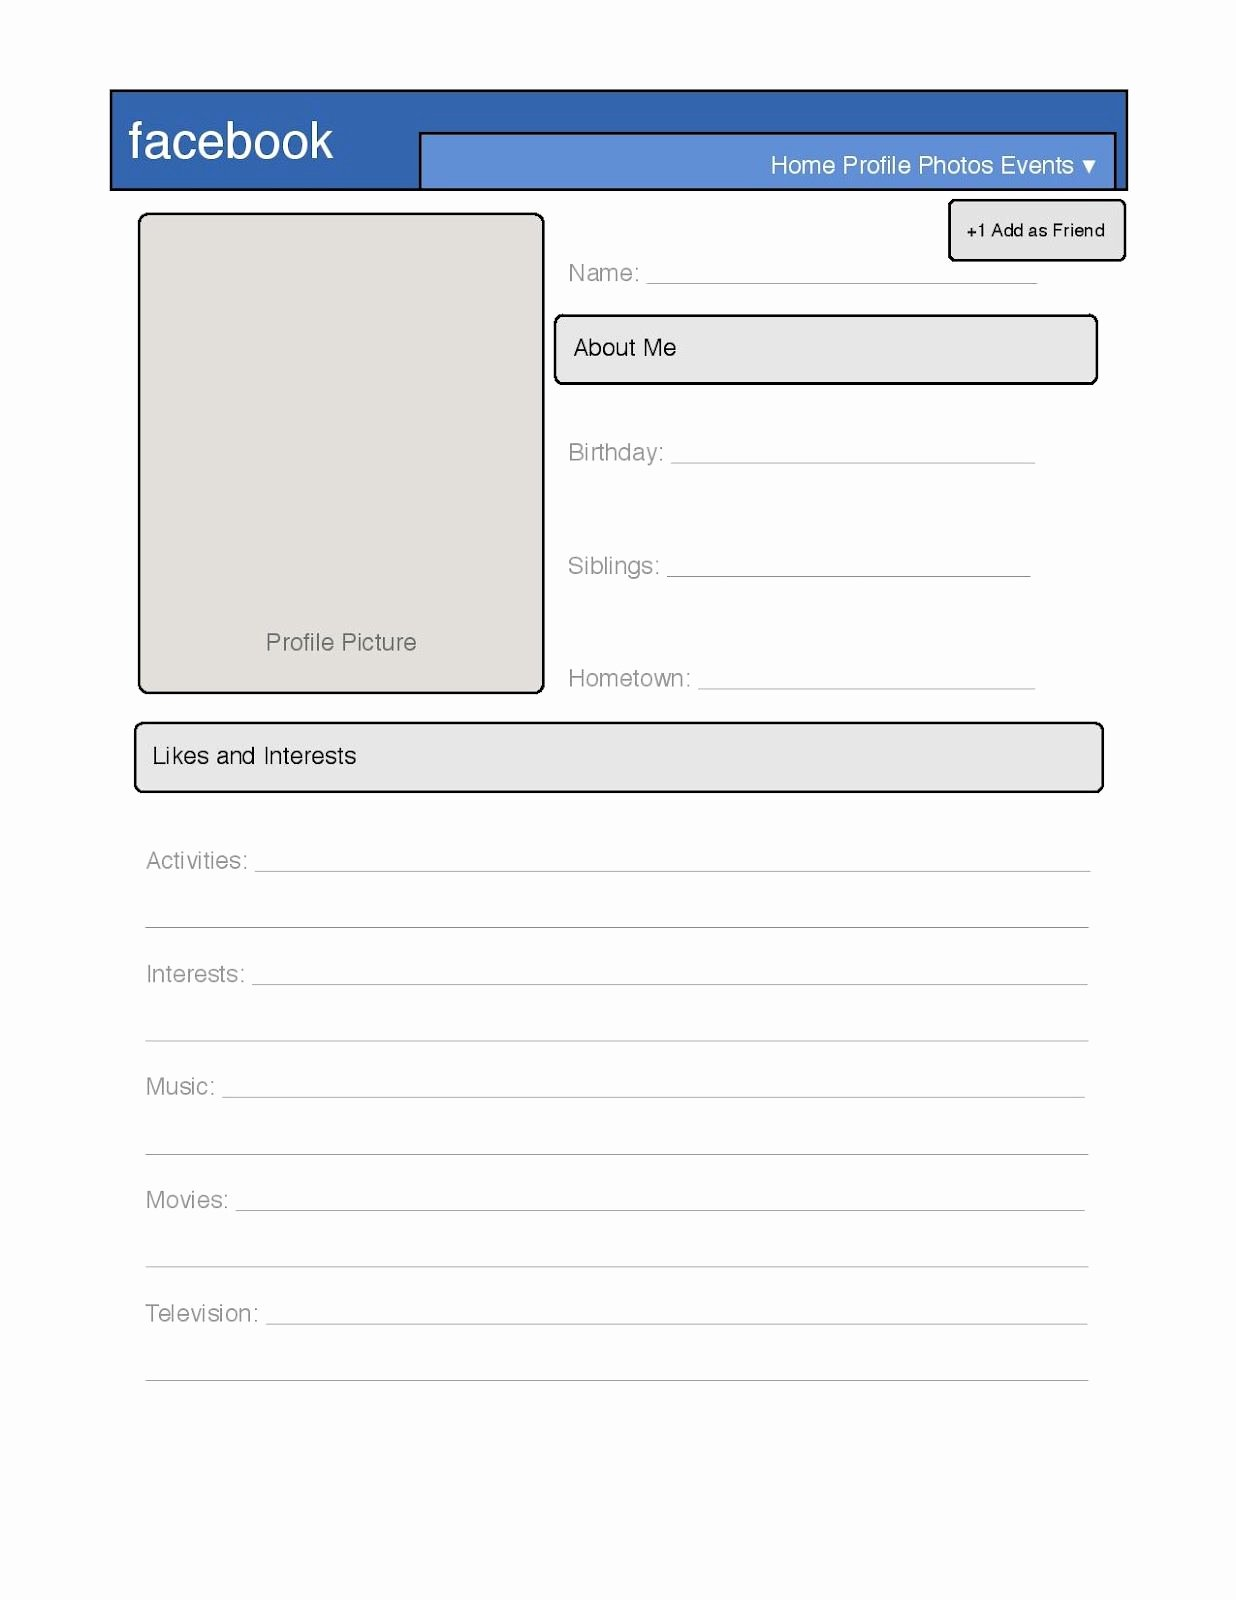 Facebook Profile Page Template Elegant Simple Profile Template Great for Introduction